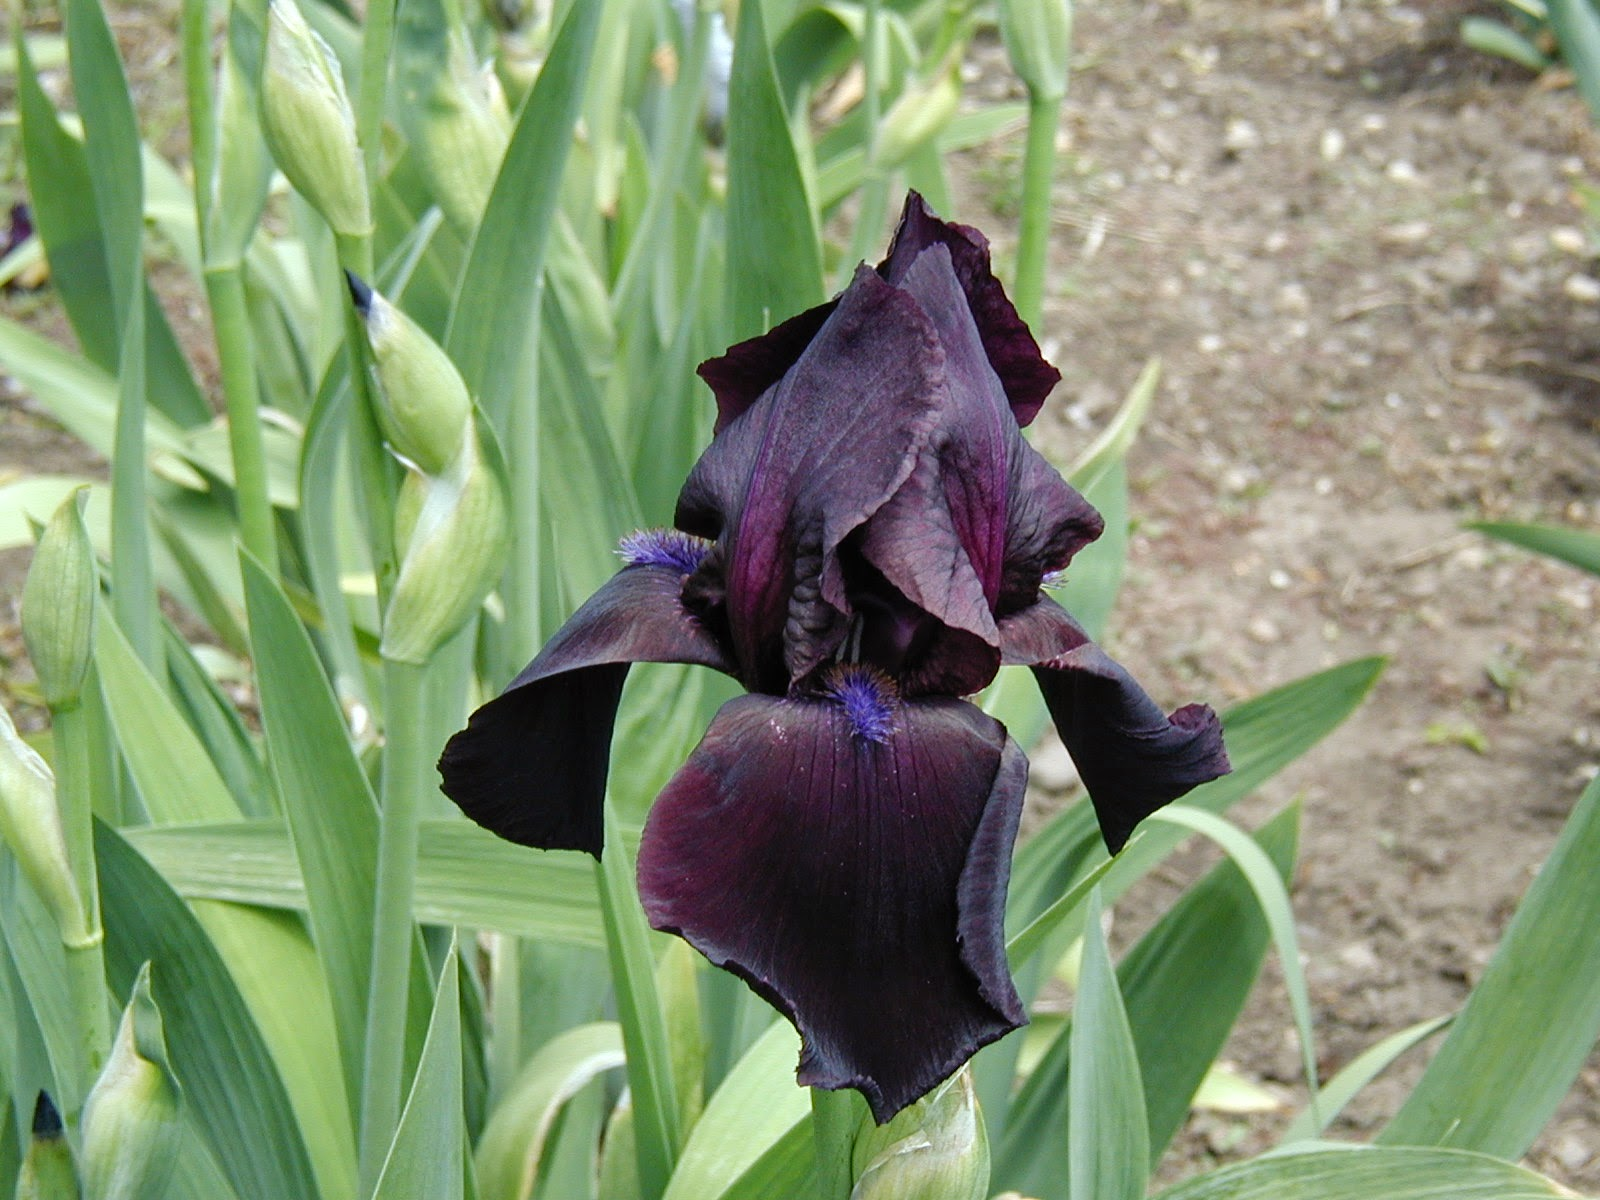 World of irises tall bearded iris my favorite black irises flower and the most black i think others have surpassed it in color since then it won hm 1994 and walther cup in 1994 the am in 1996 izmirmasajfo